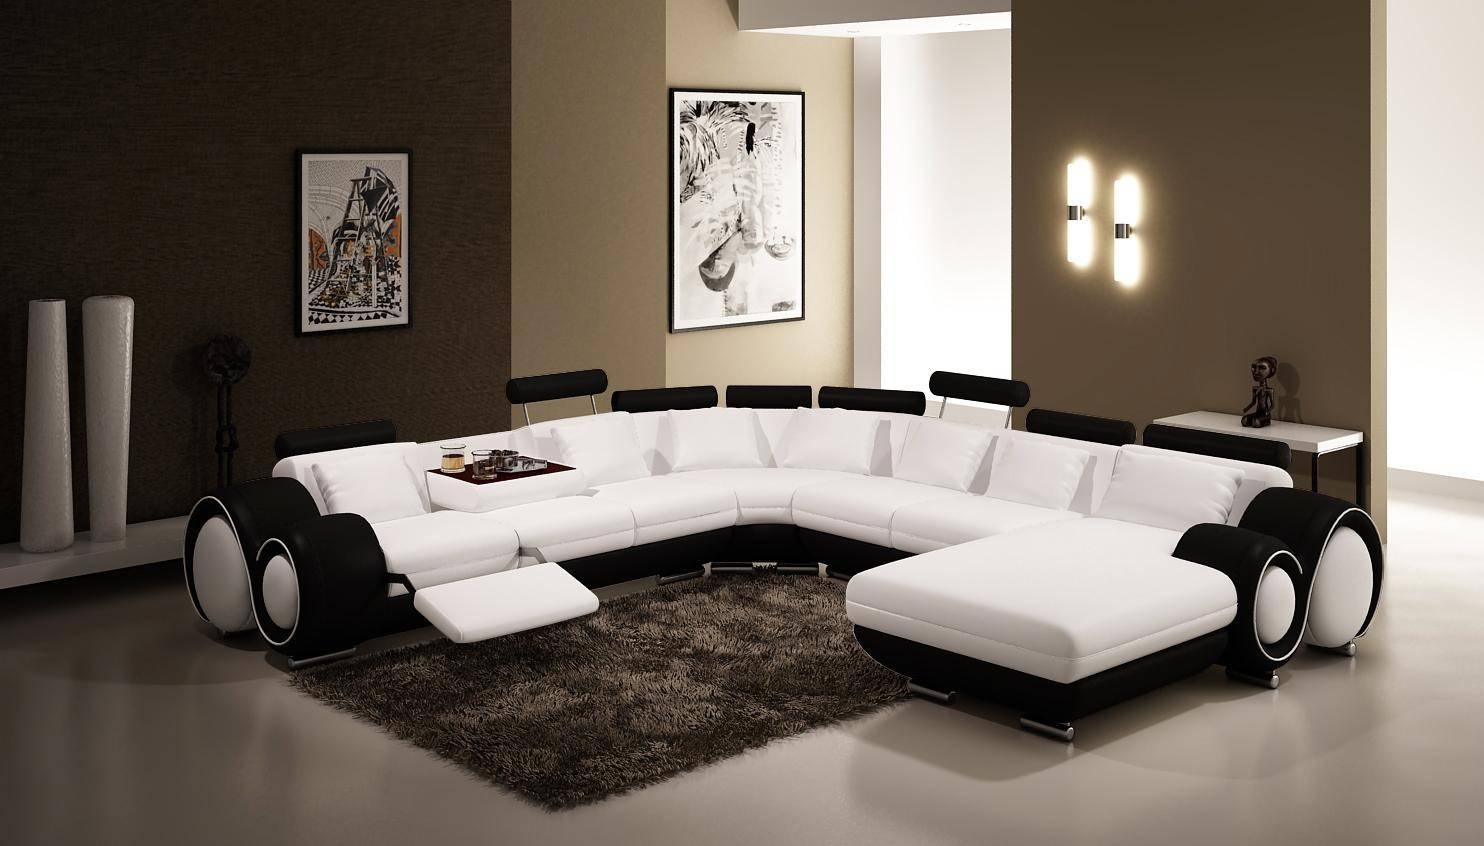 Vig Furniture 4084 Contemporary Black And White Leather Sectional Sofa intended for Black and White Sectional Sofa (Image 27 of 30)